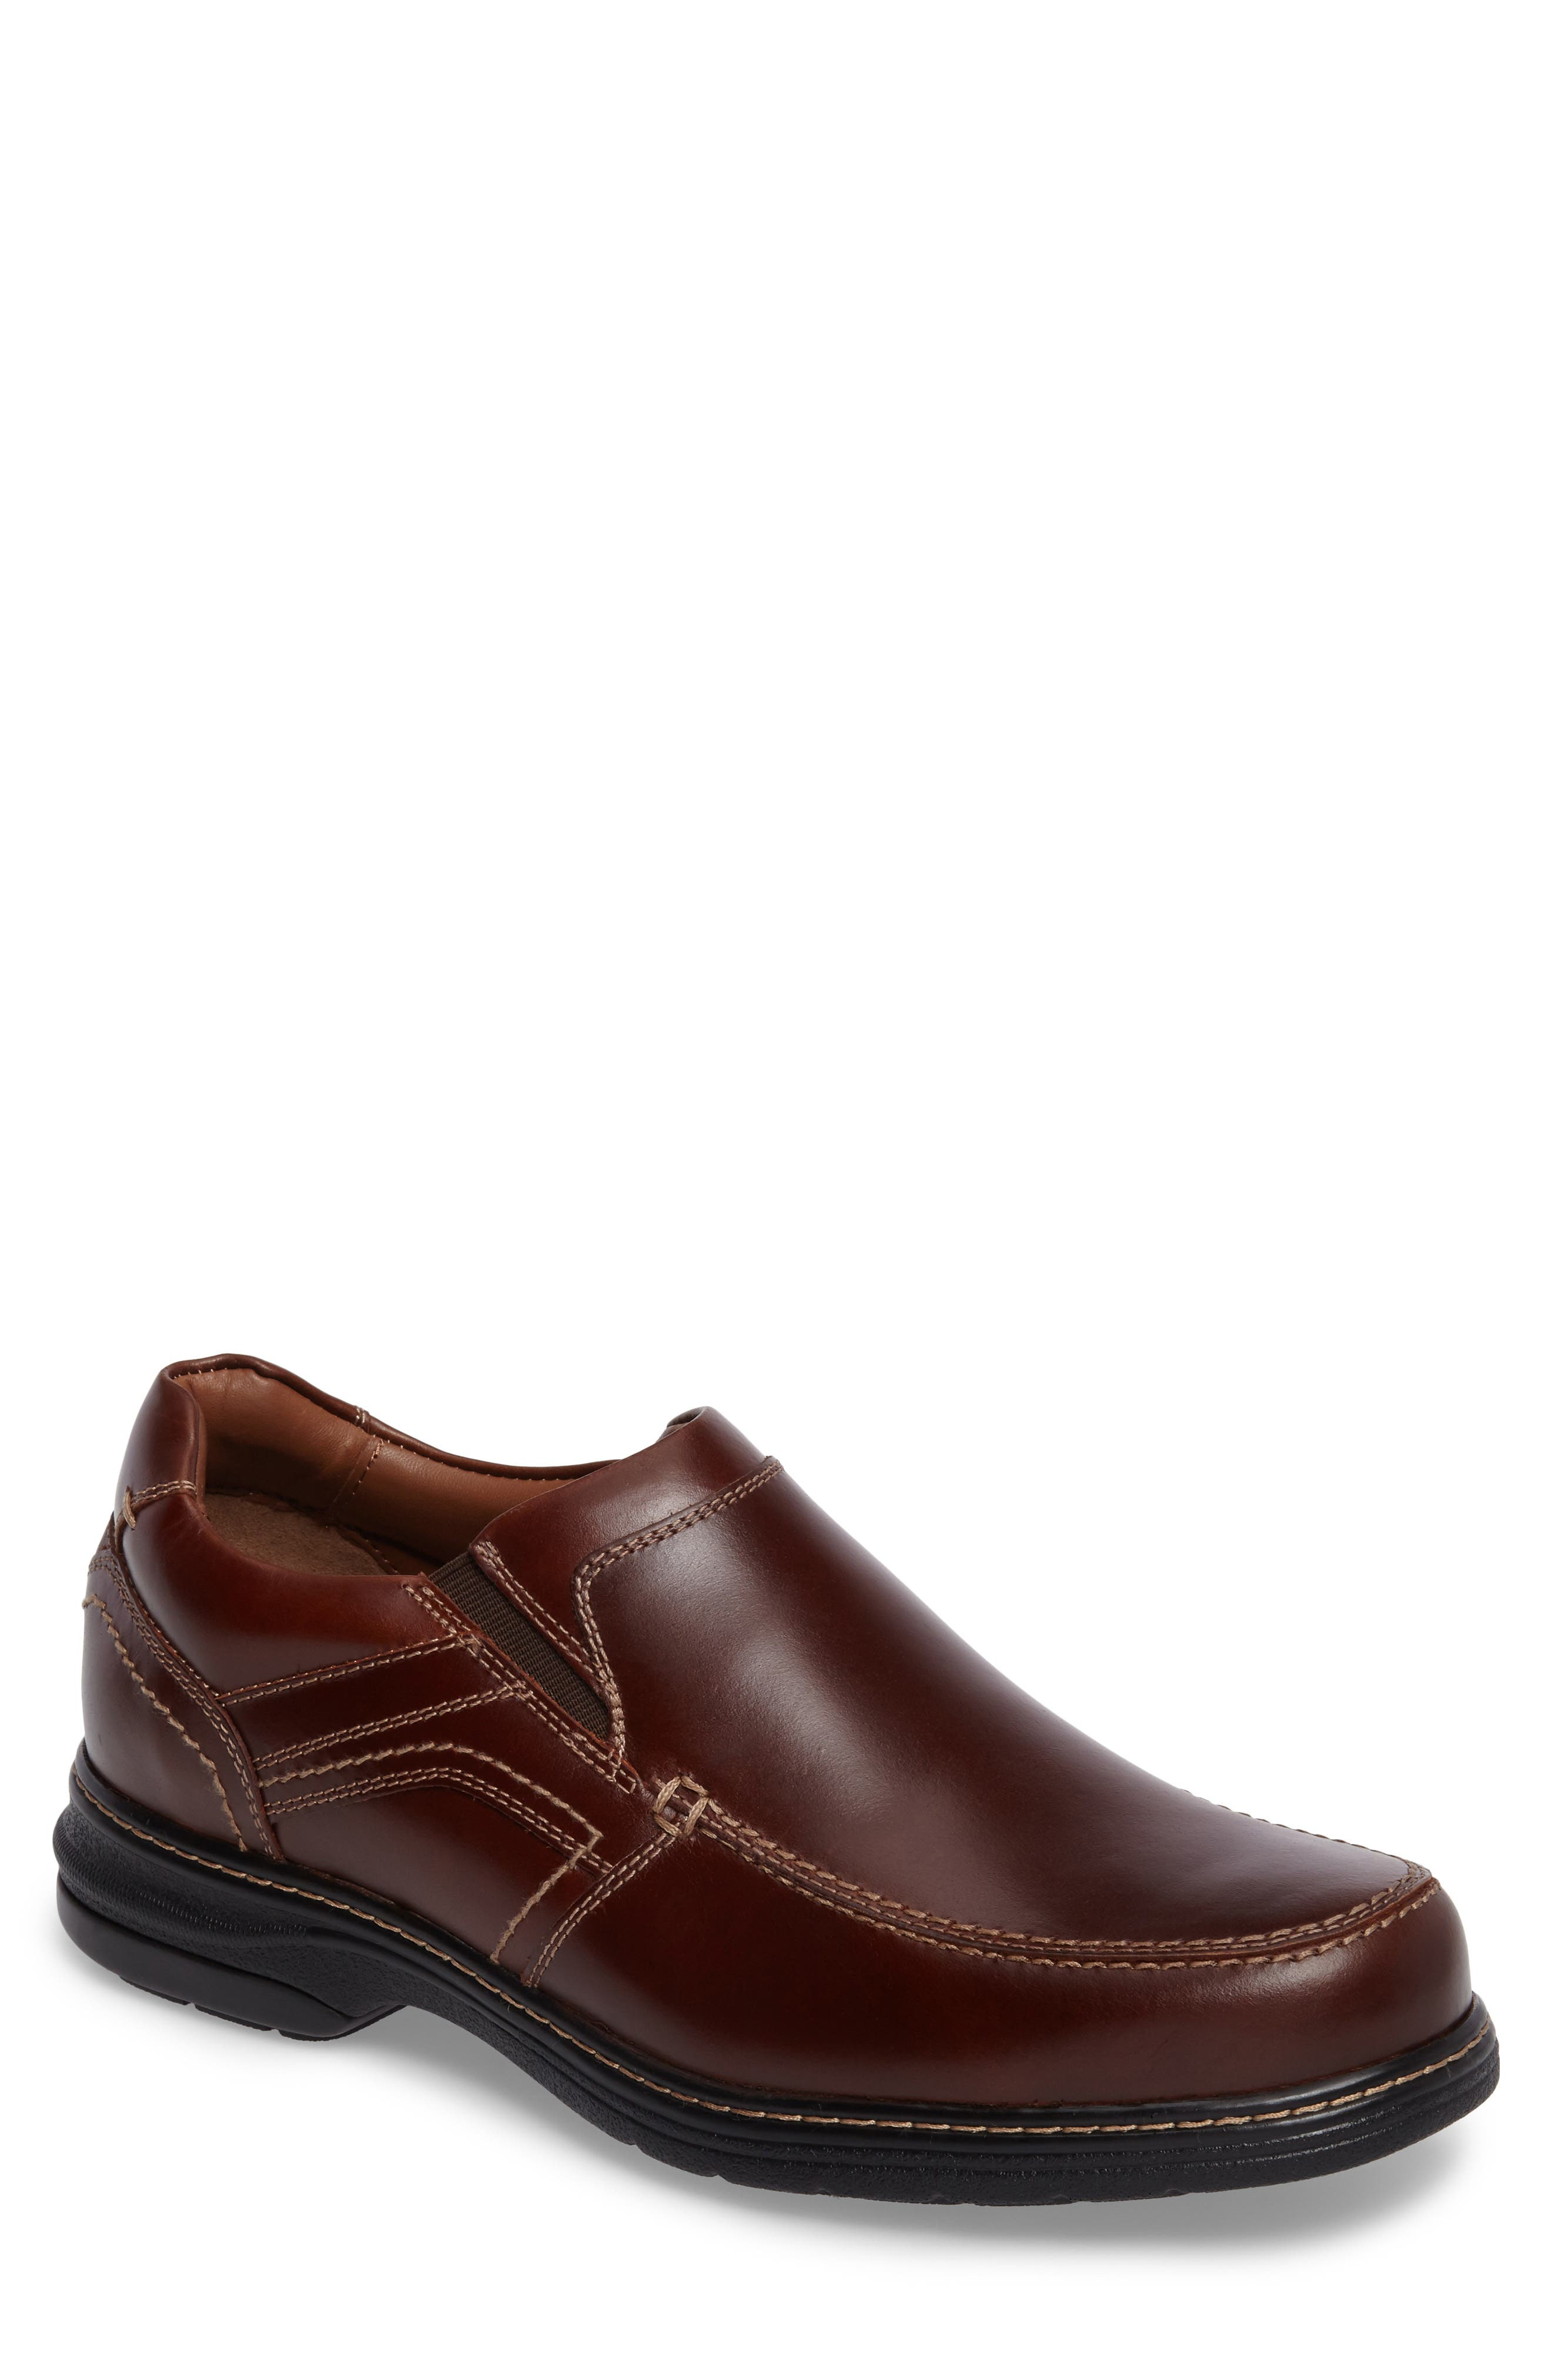 Windham Venetian Loafer,                         Main,                         color, Mahogany